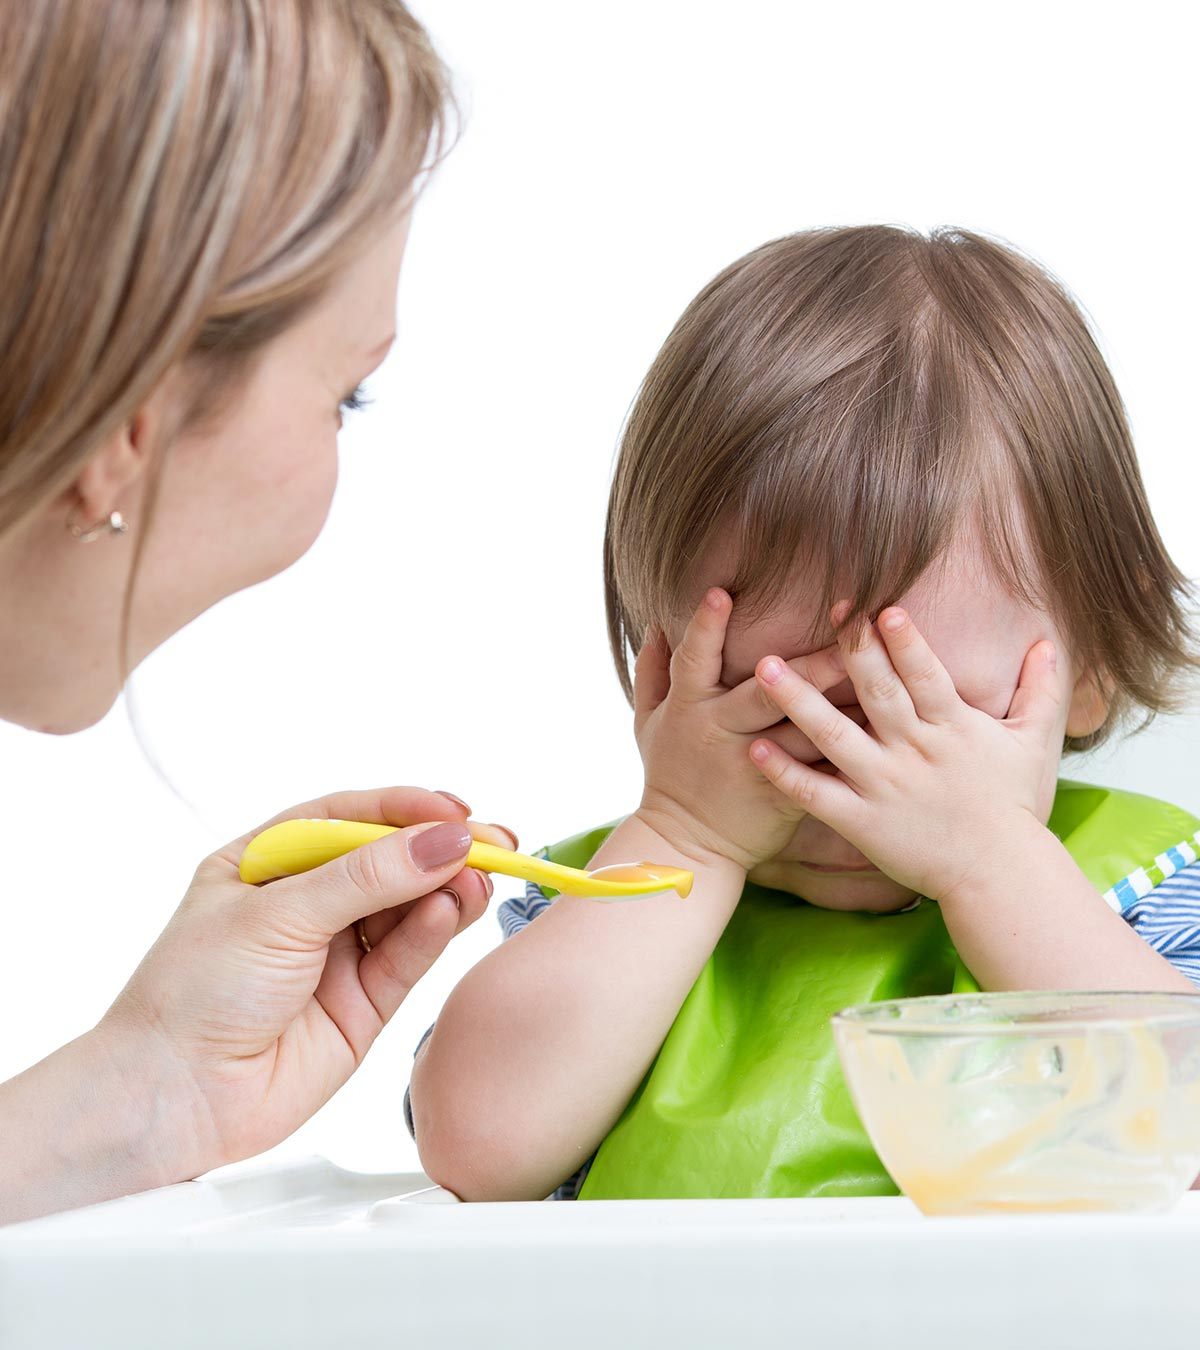 Loss Of Appetite In Toddlers - Causes & Symptoms You Should